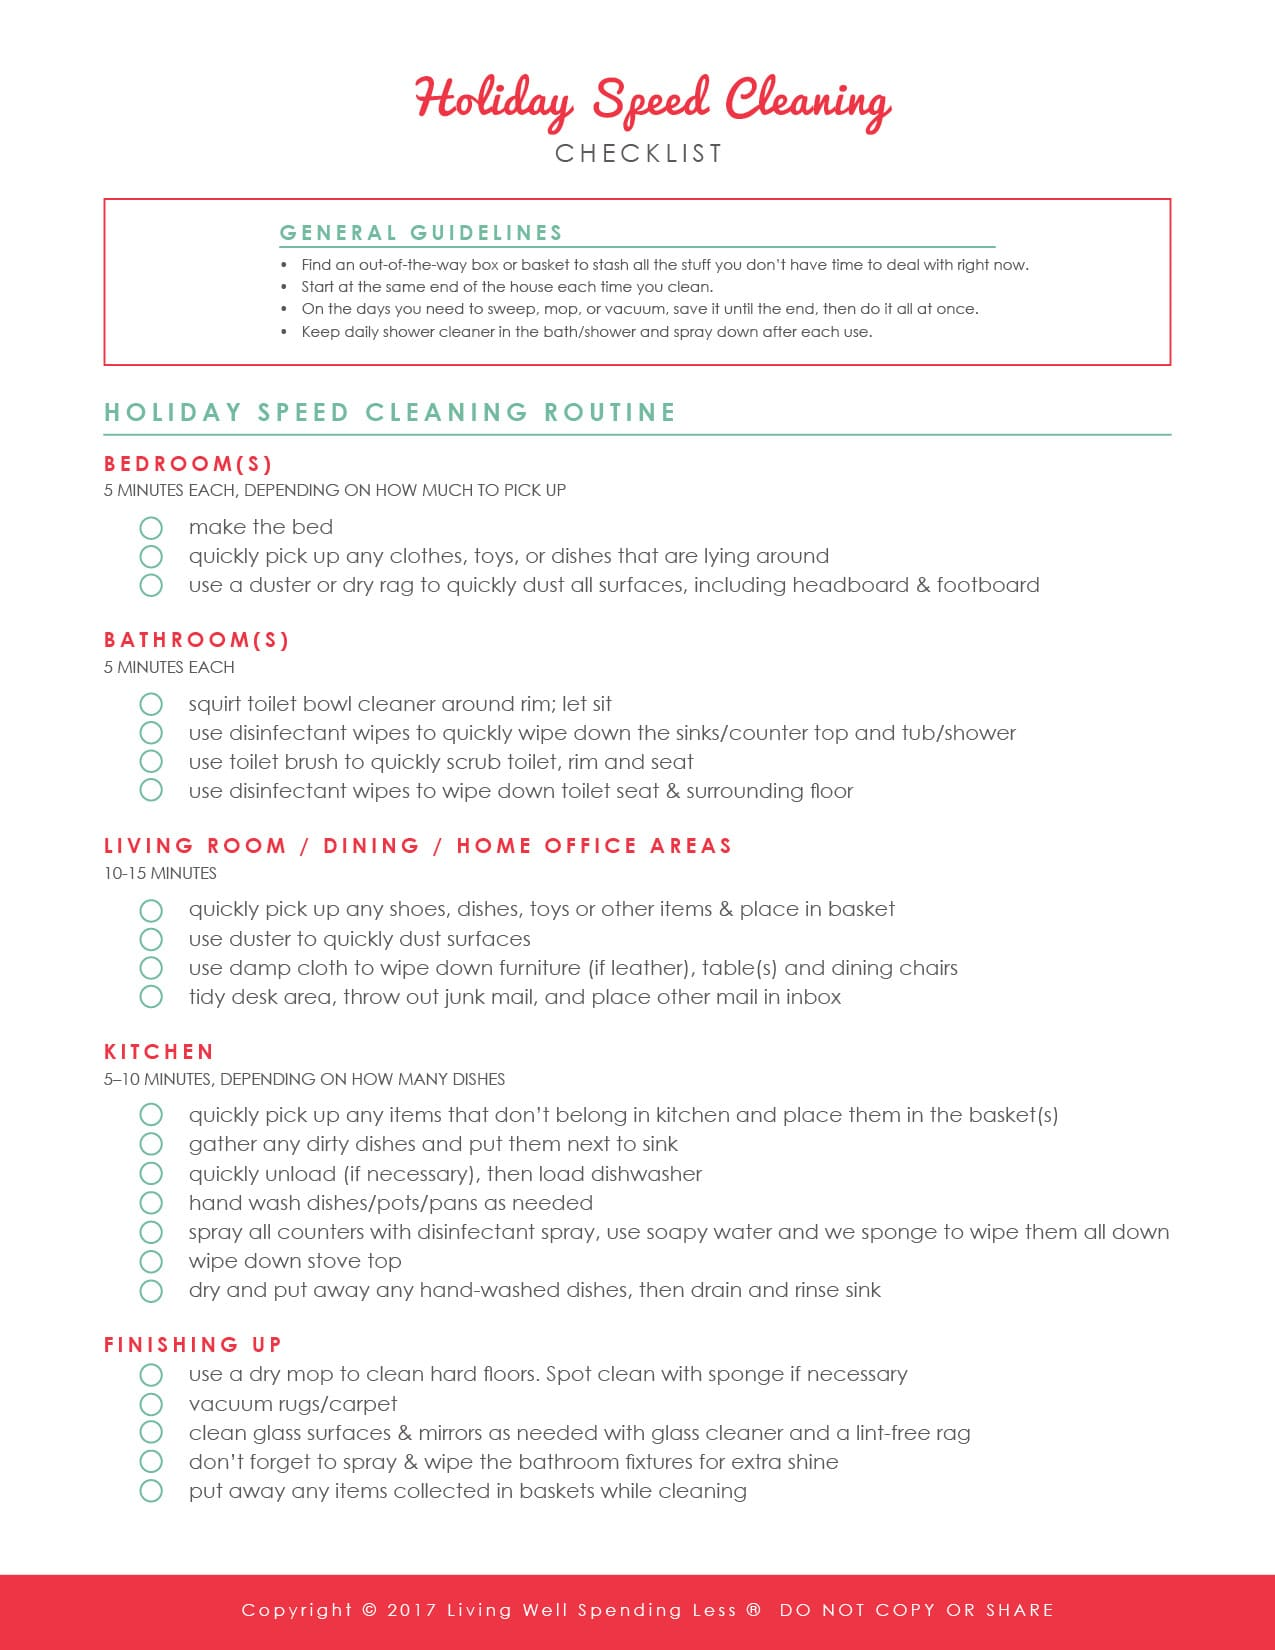 Holiday Speed Cleaning | Holiday Cleaning Guide | Quick Clean Holidays | Holiday Speed Cleaning Routine | Holiday Speed Cleaning Checklist